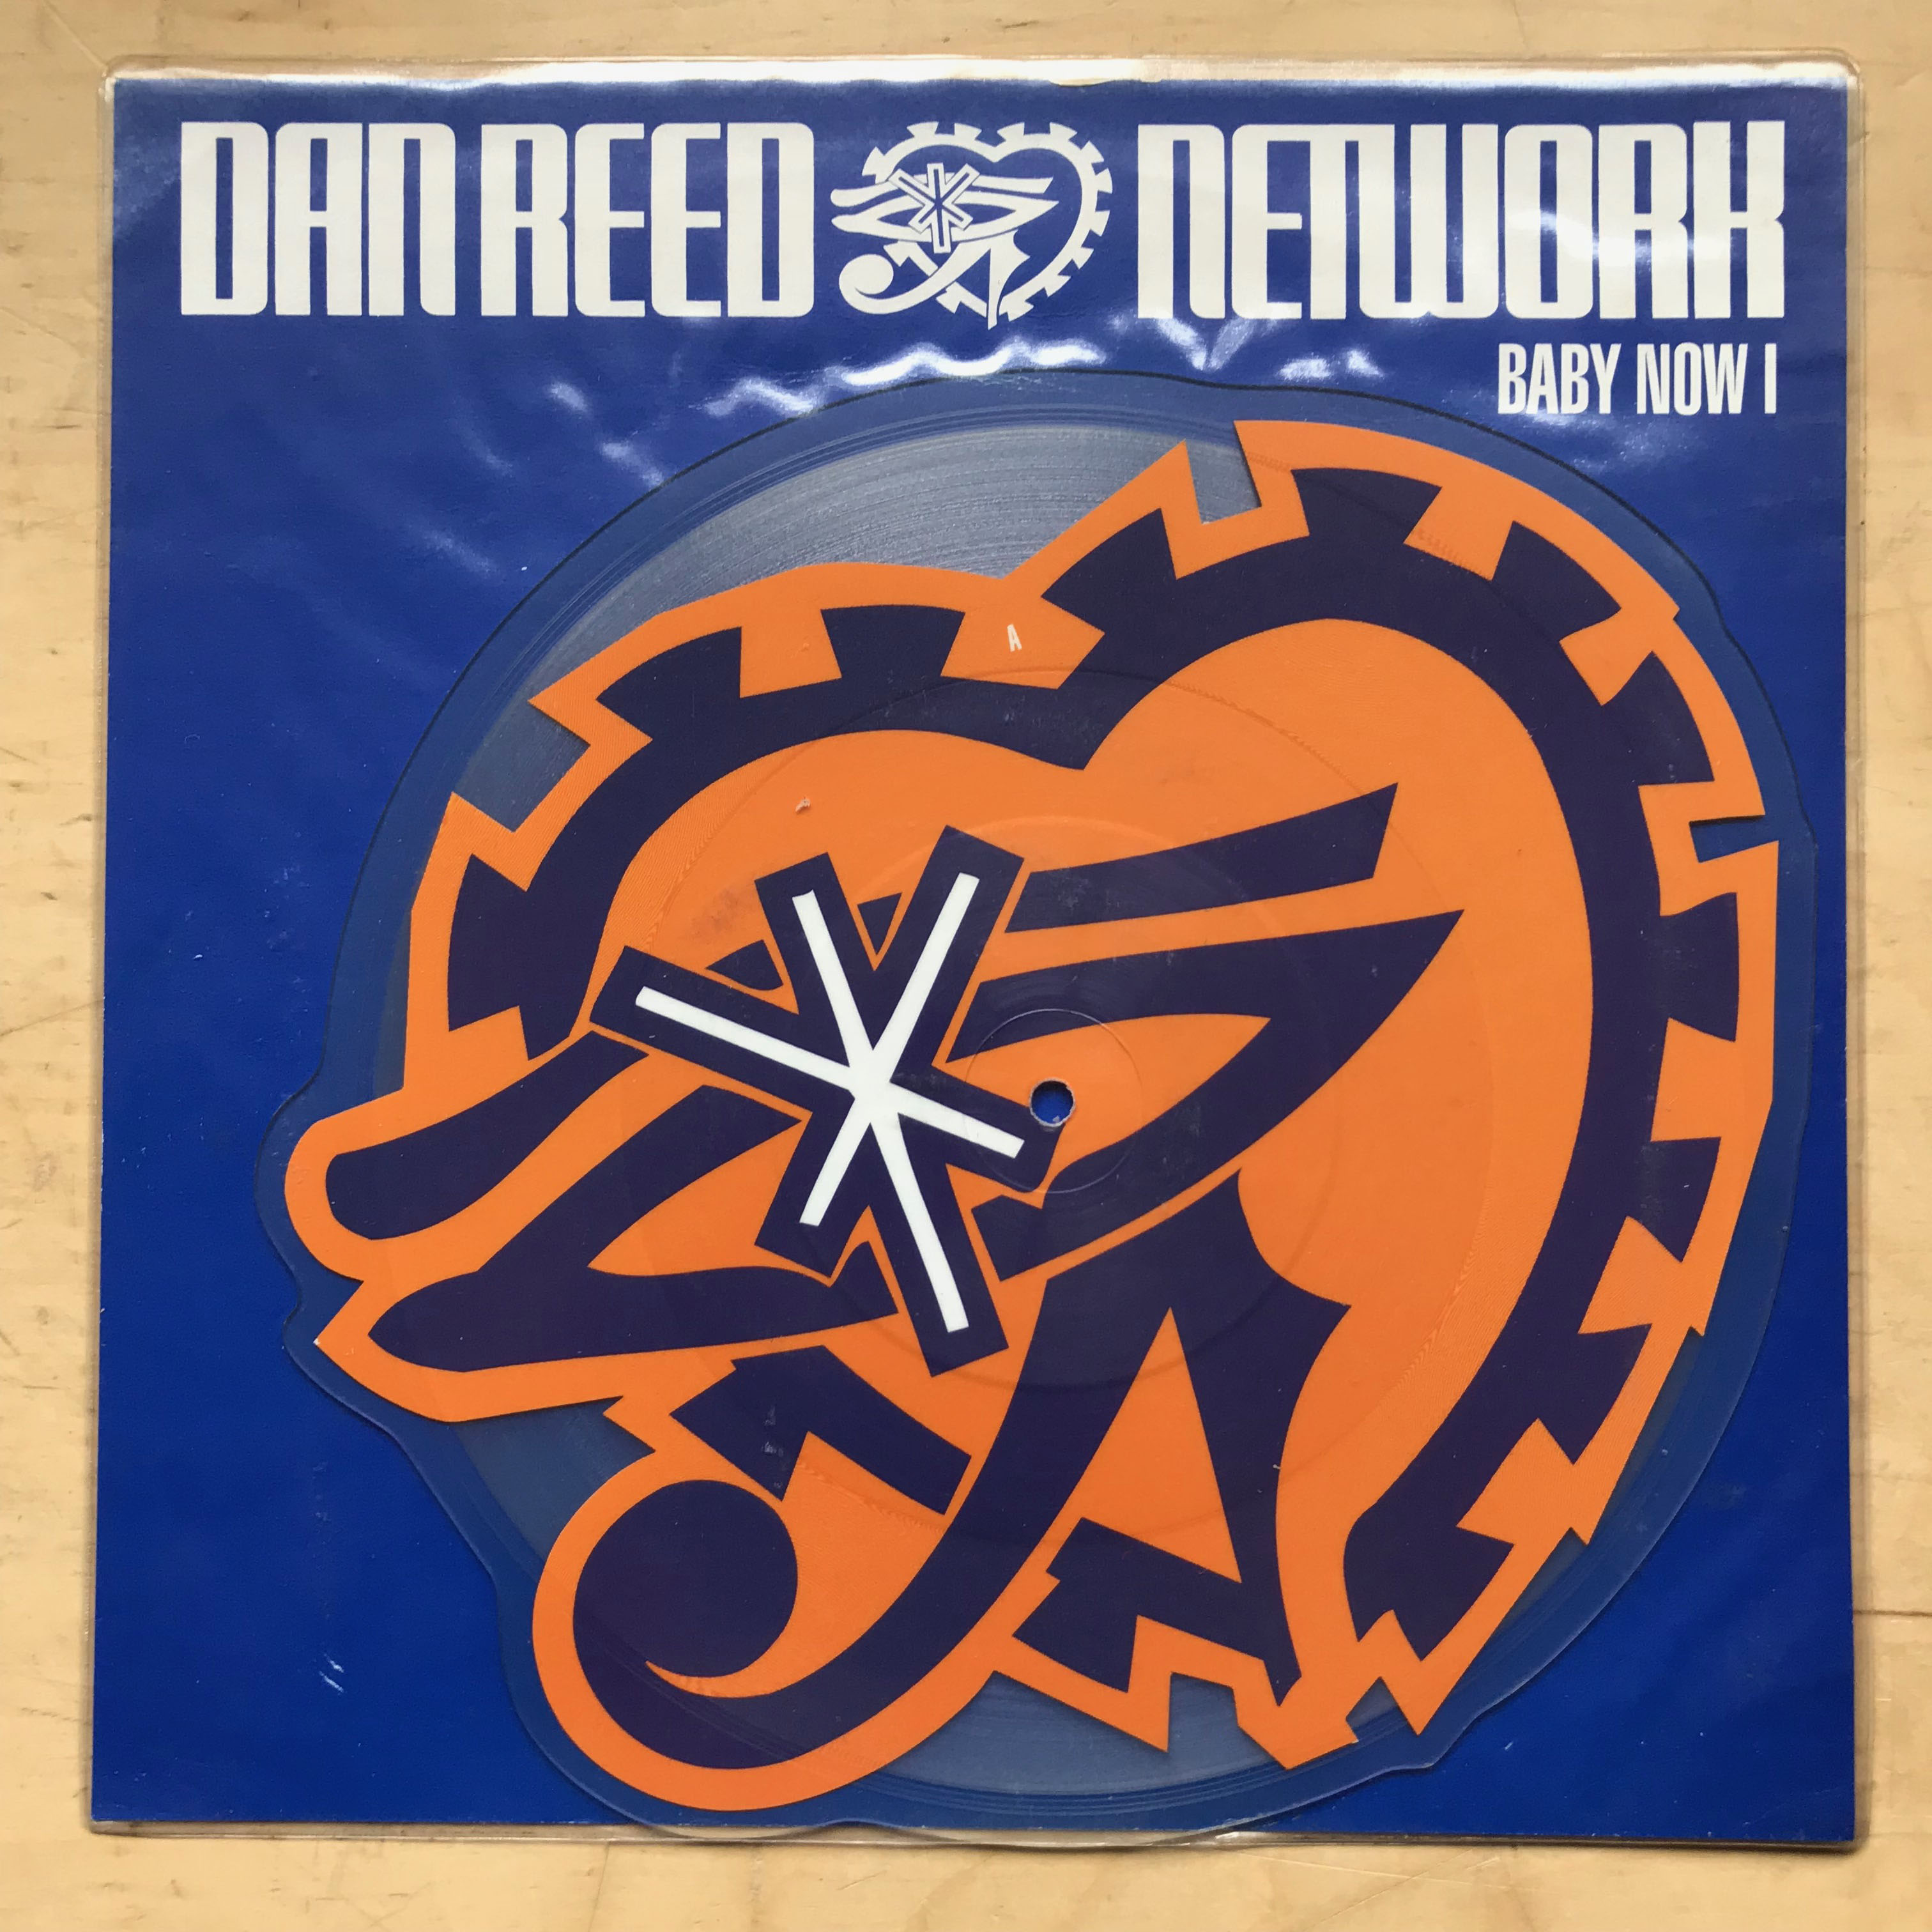 DAN REED NETWORK - BABY NOW I